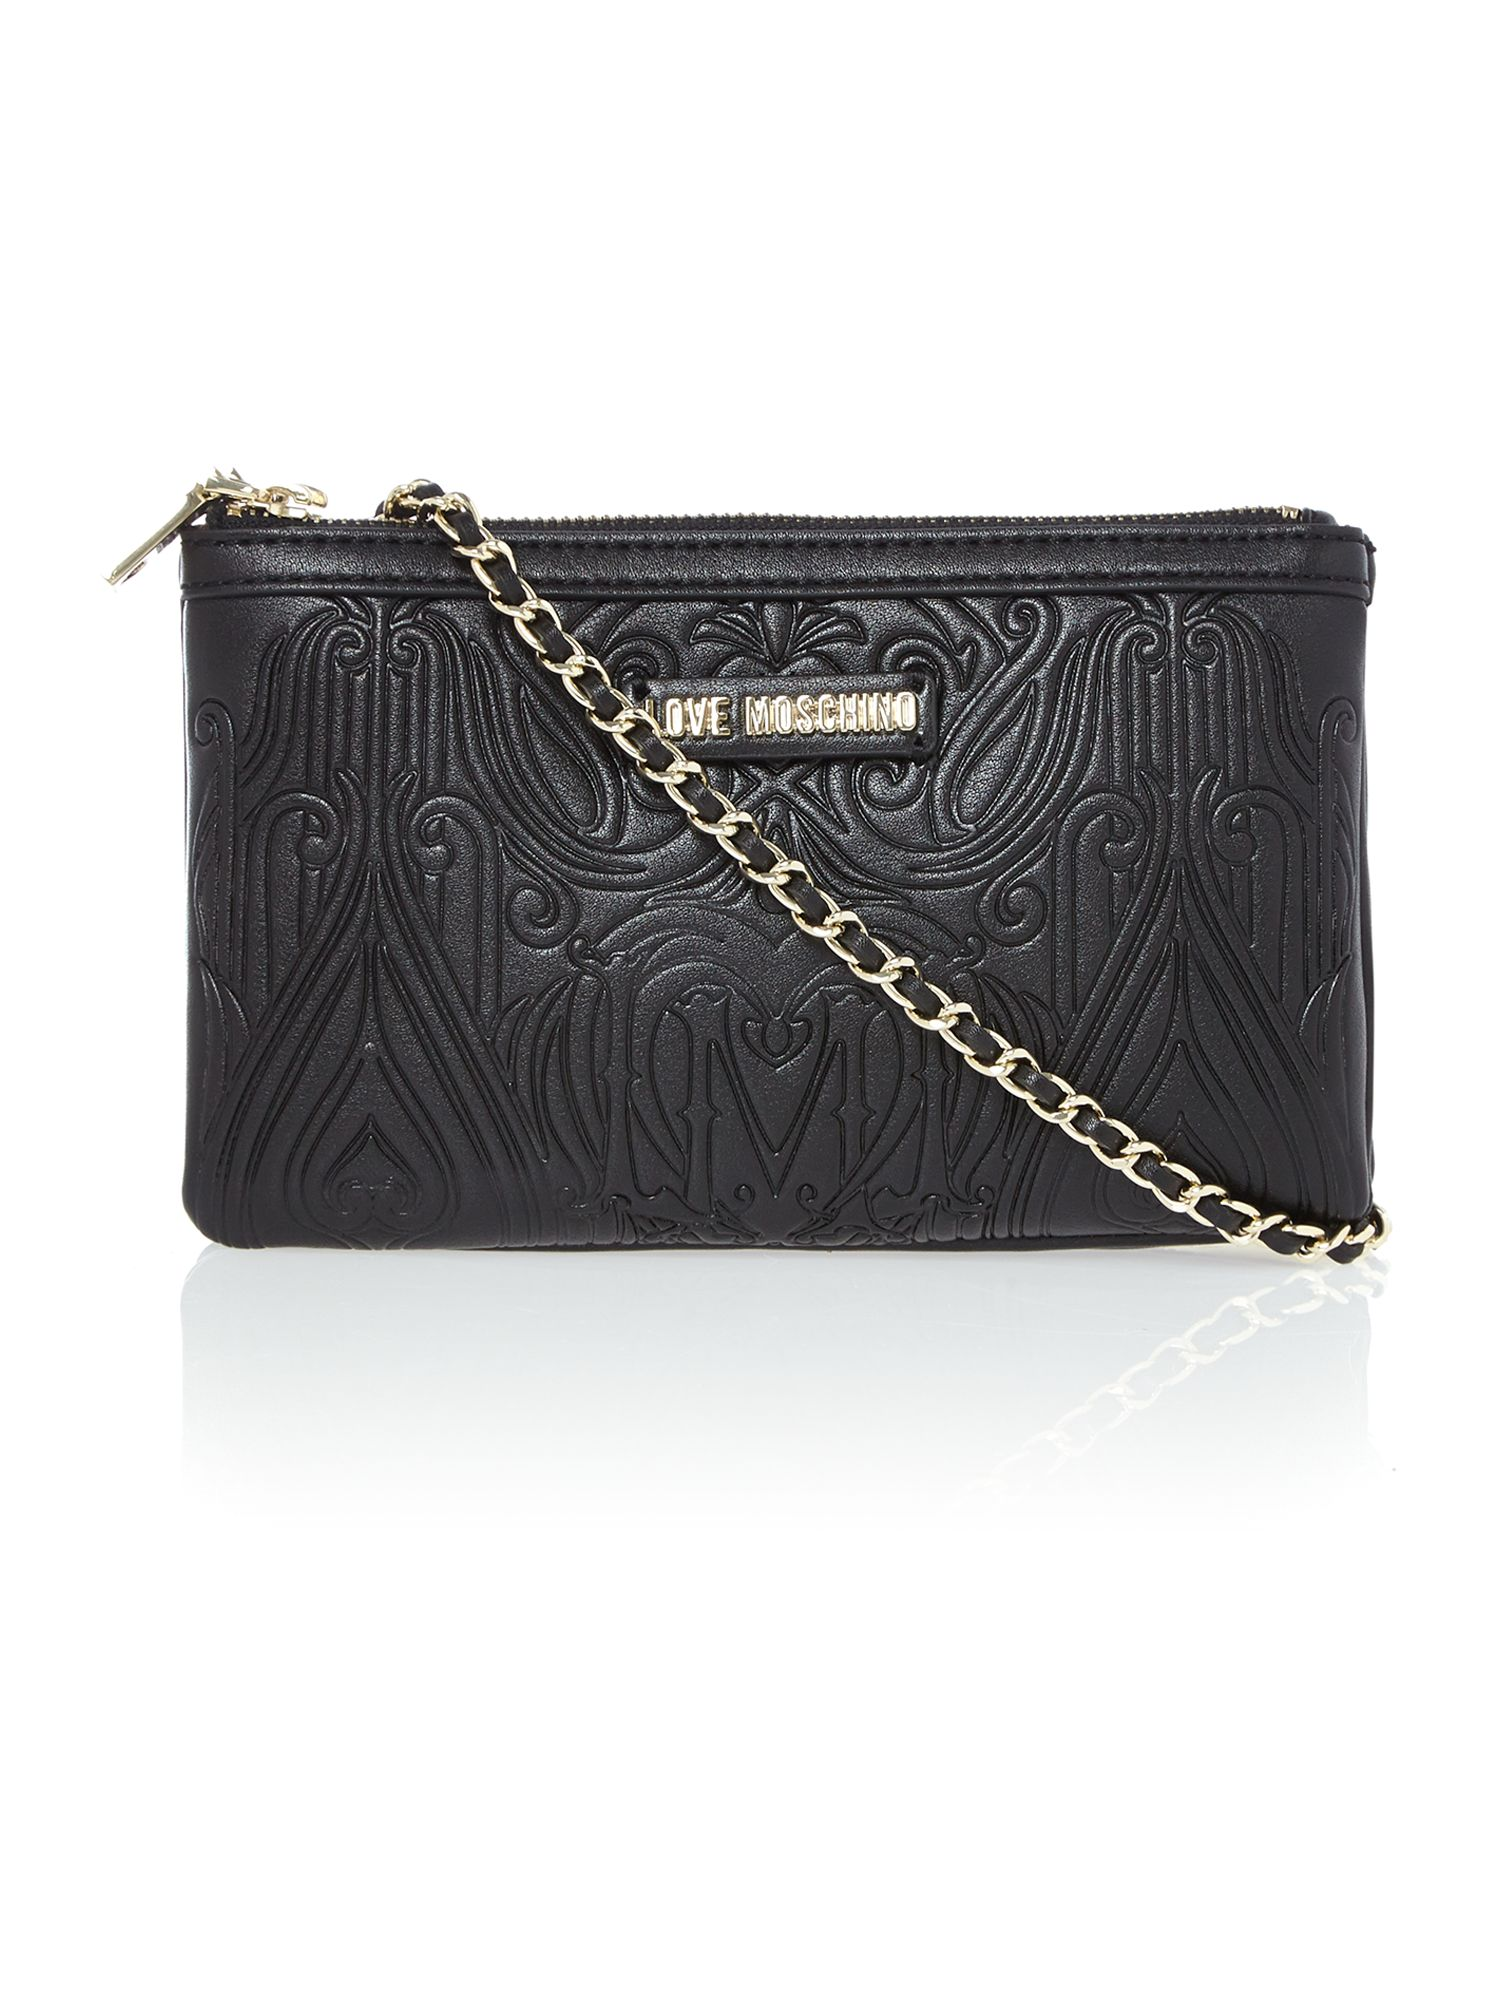 Black small gothic embossed cross body bag